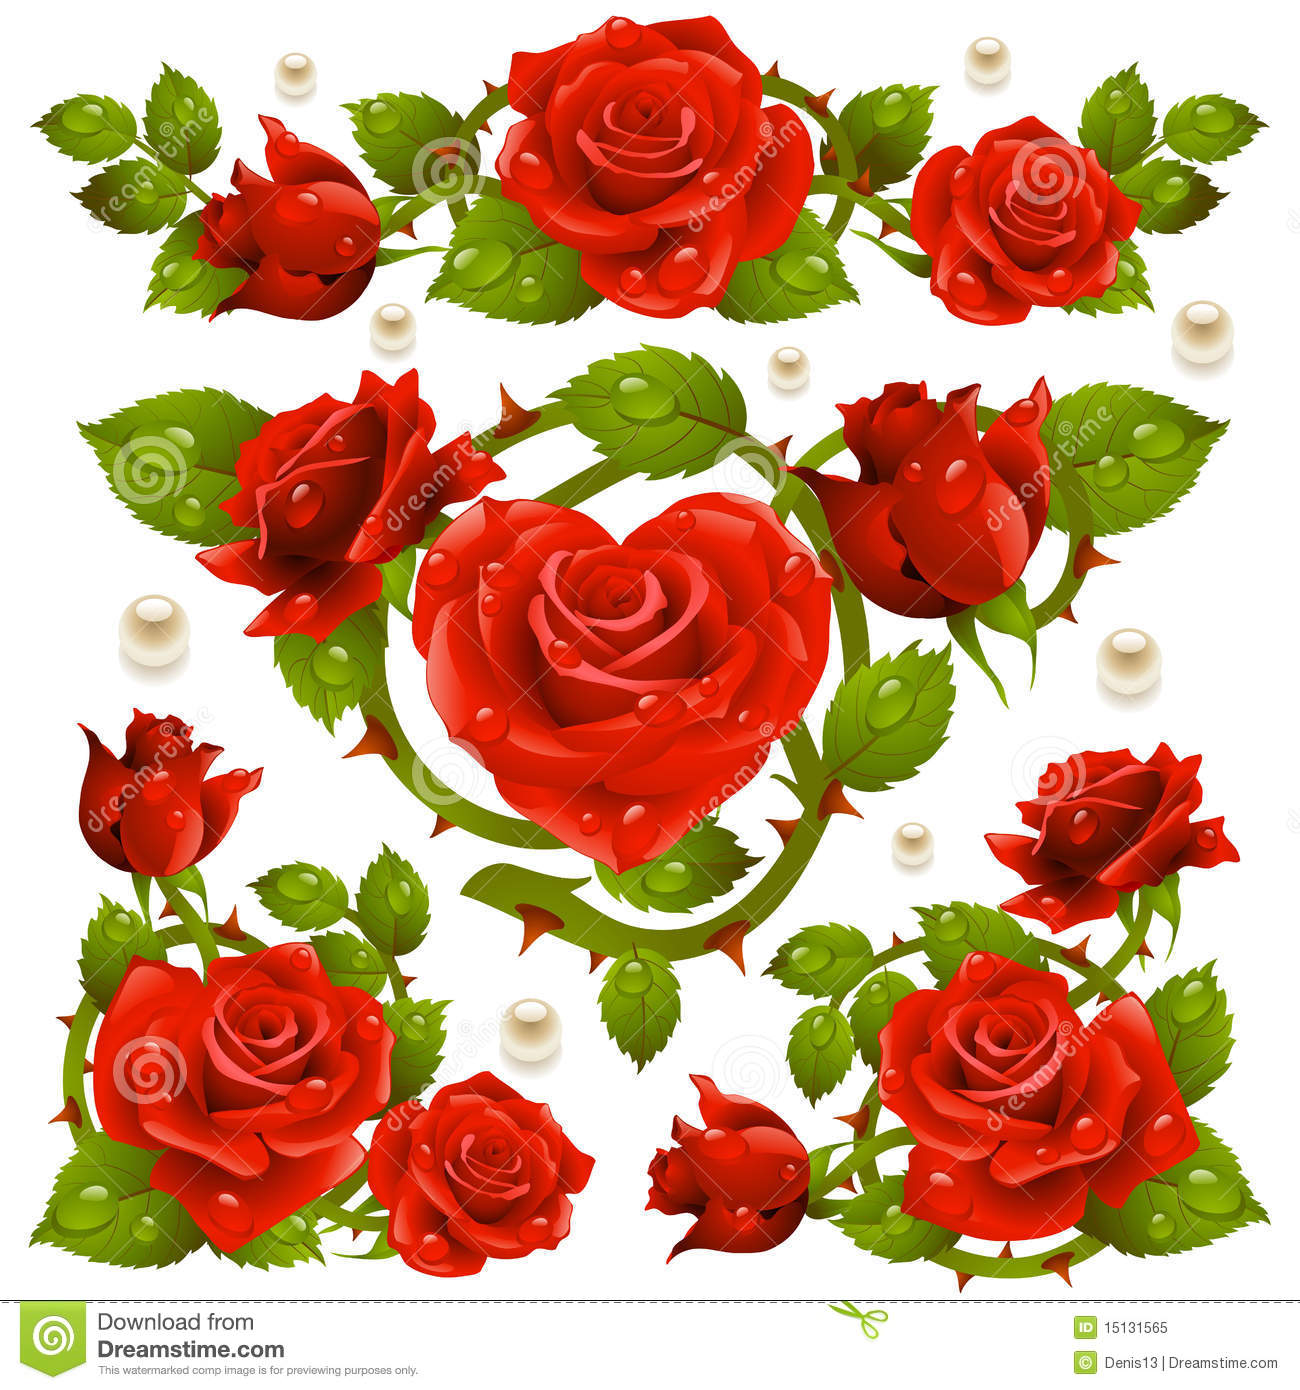 Red Rose design elements stock vector. Image of mother ...